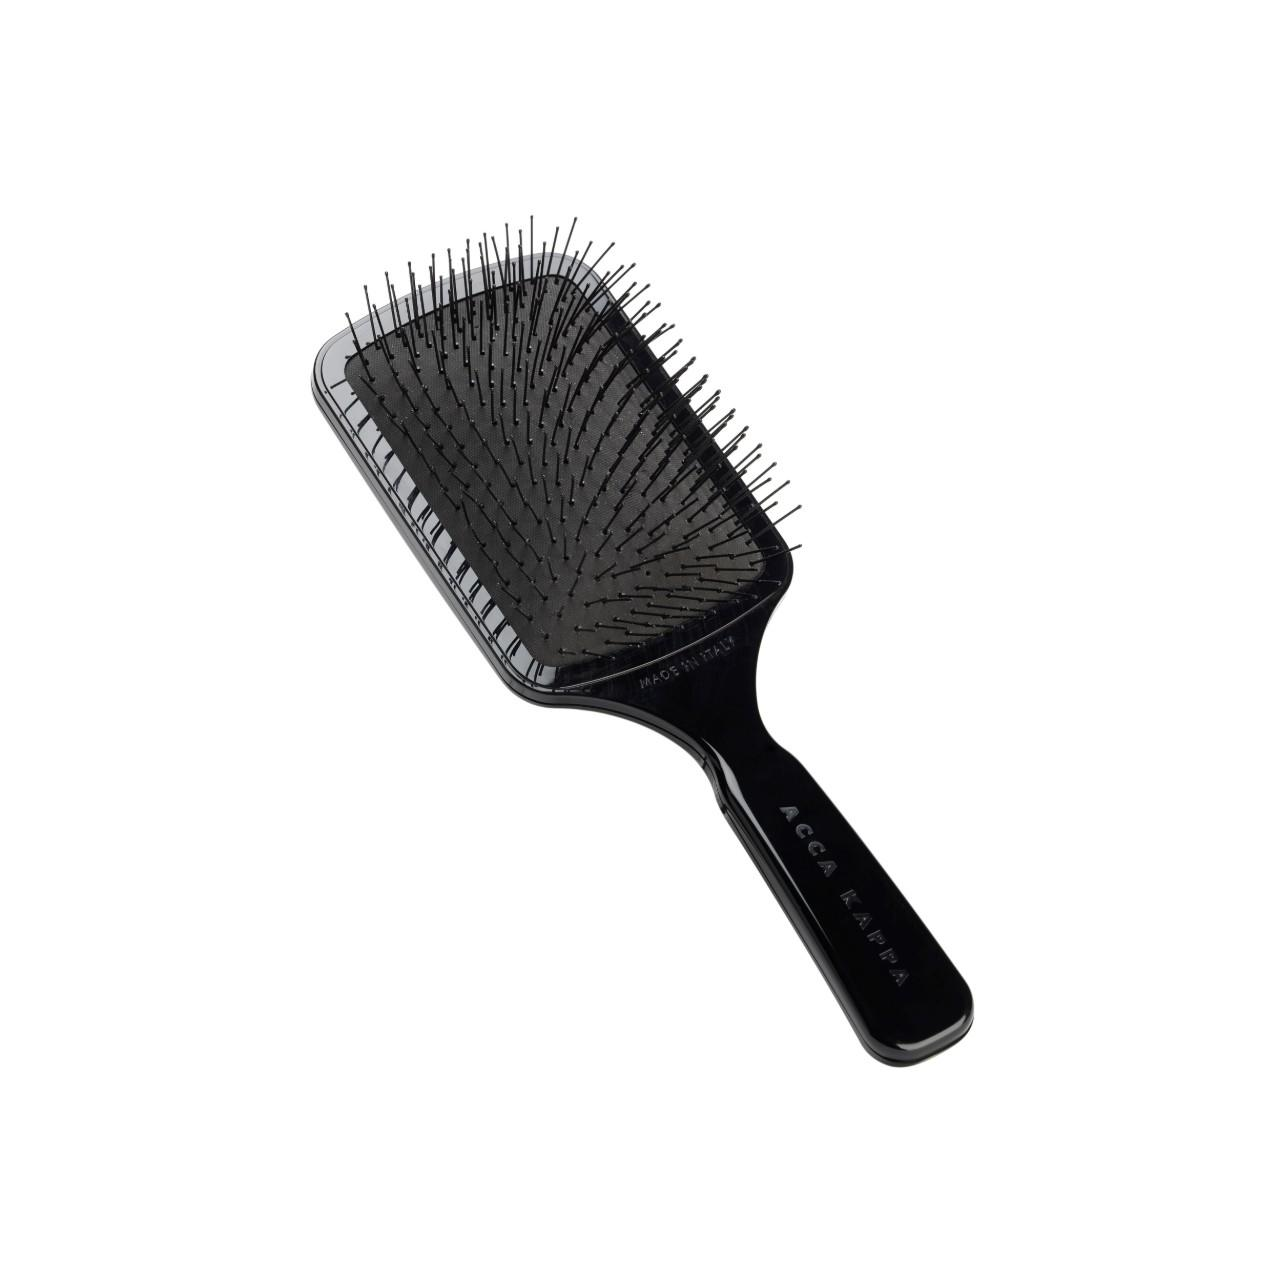 The Shower Paddle Brush with Soft Nylon Pins and Resin Tips by ACCA KAPPA